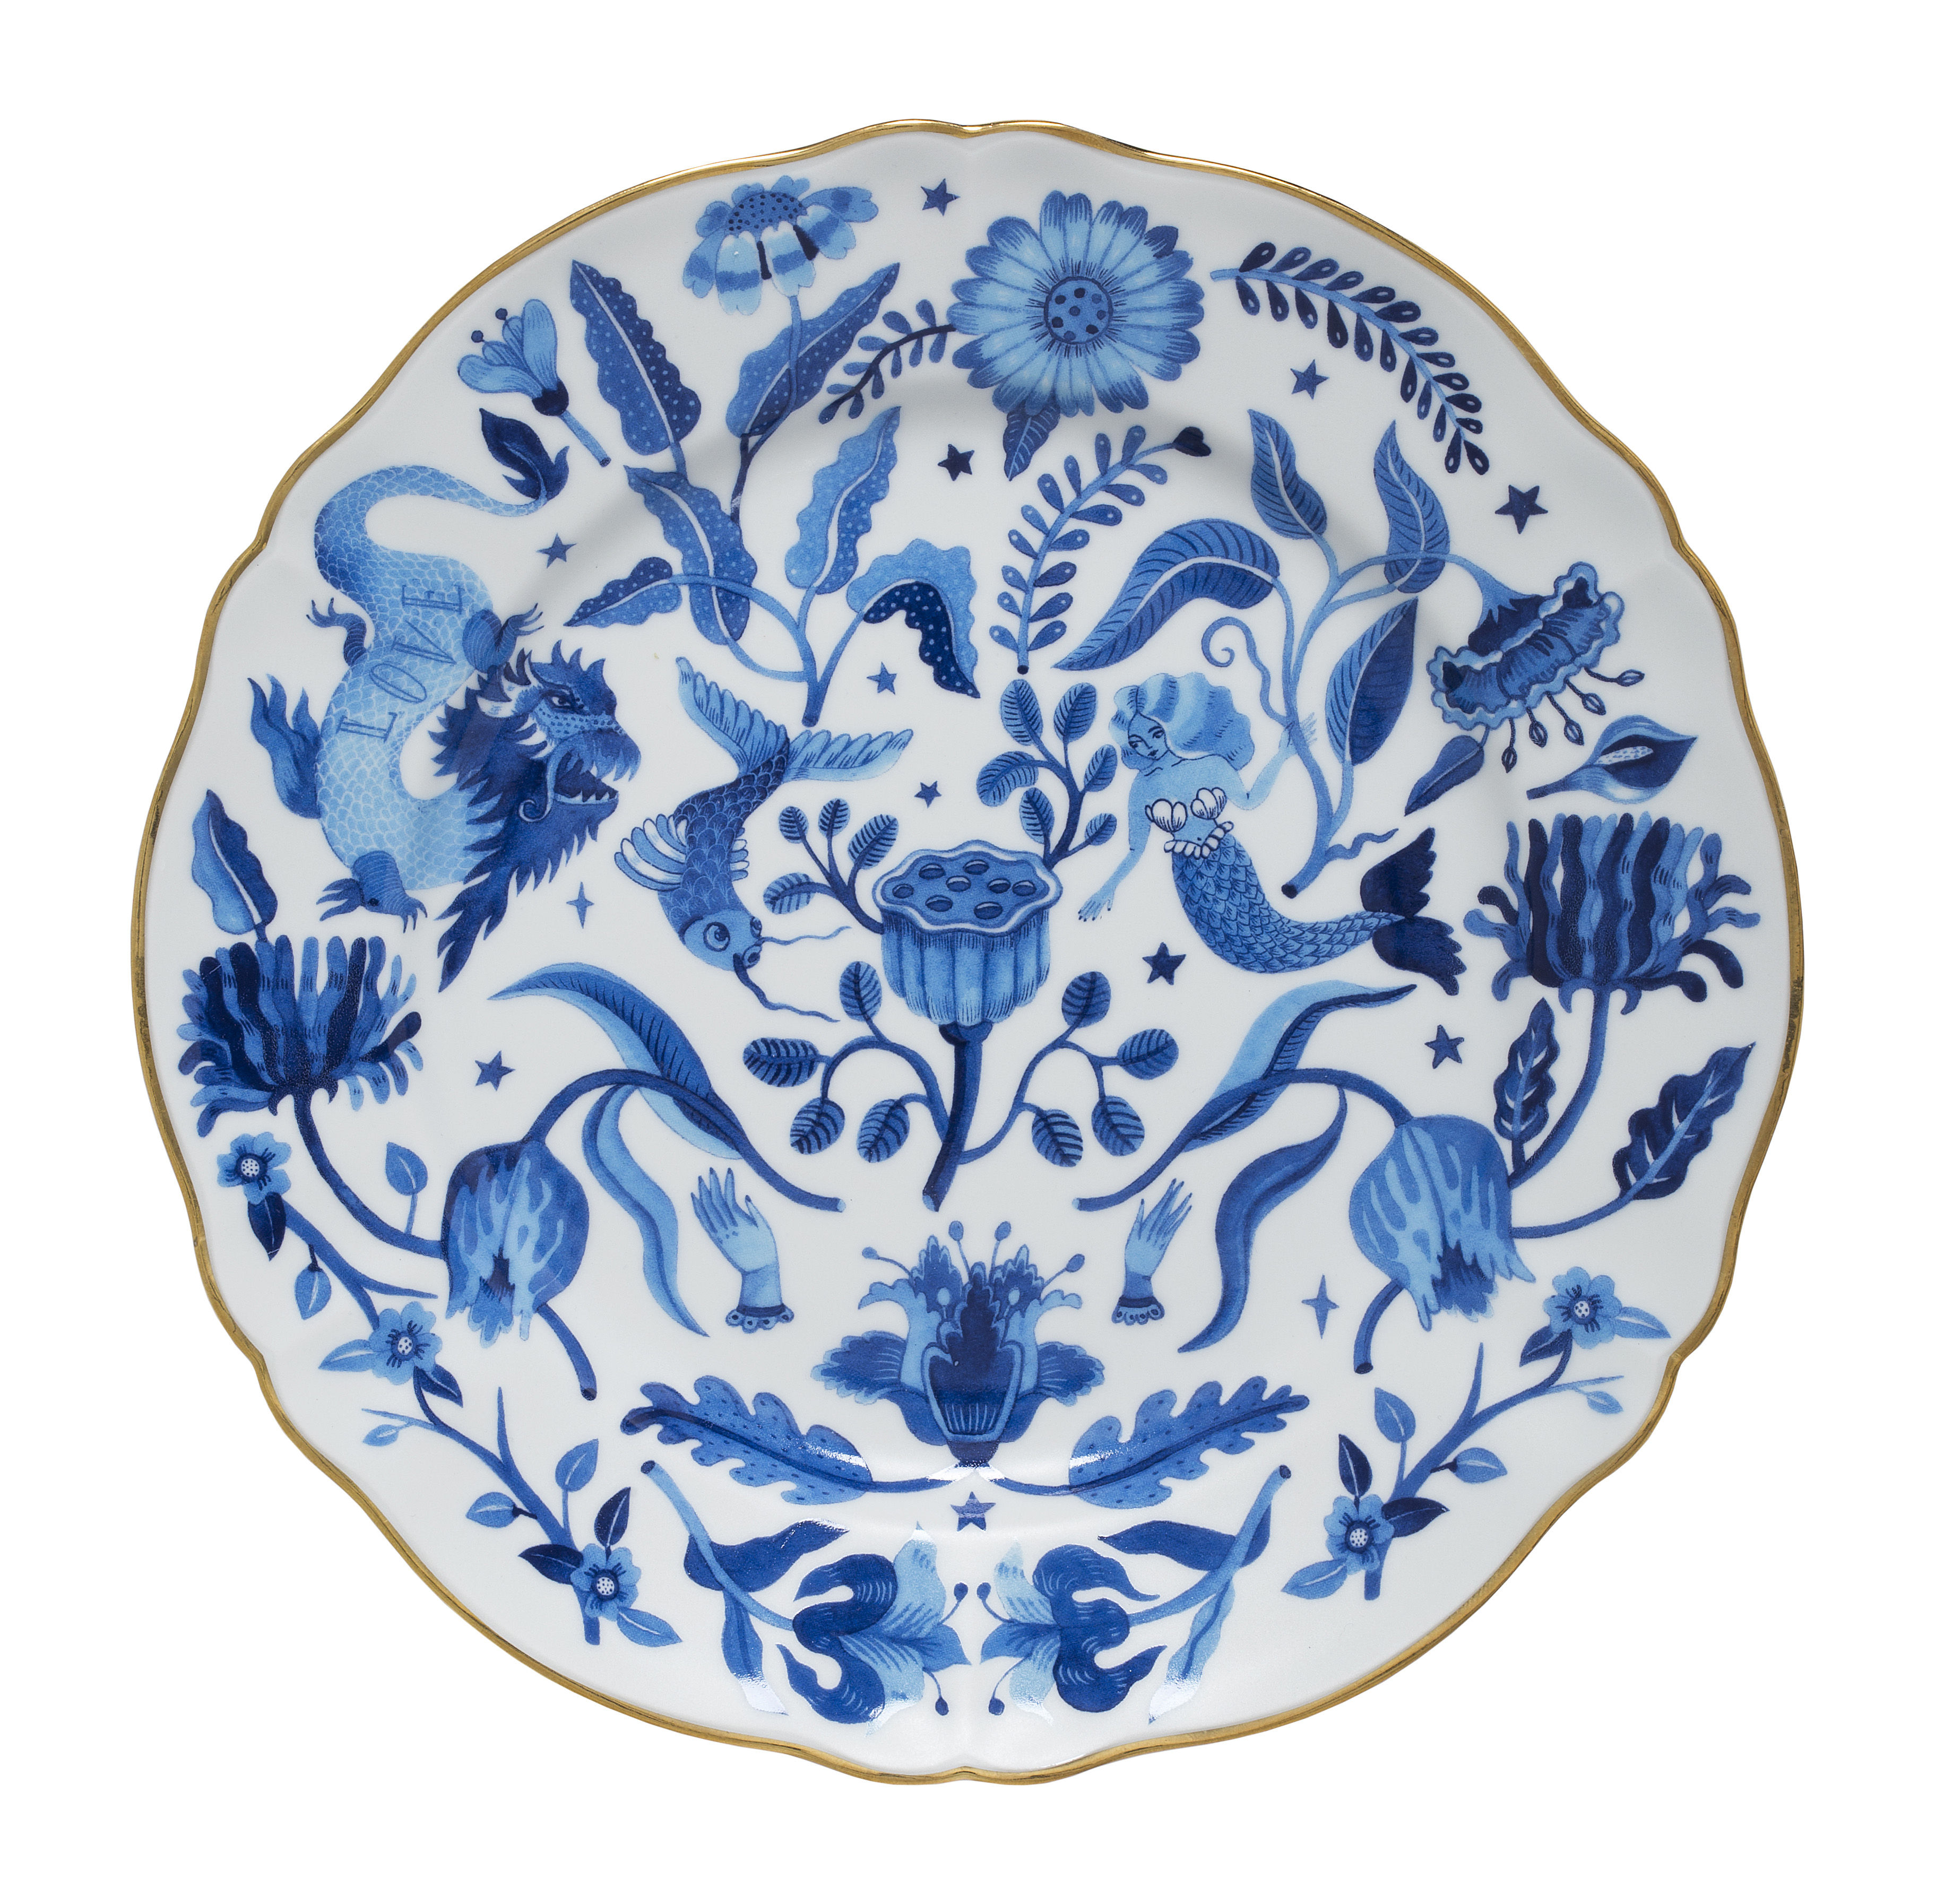 Tableware - Plates - All over Plate - / Ø 26.5 cm by Bitossi Home - All over - China